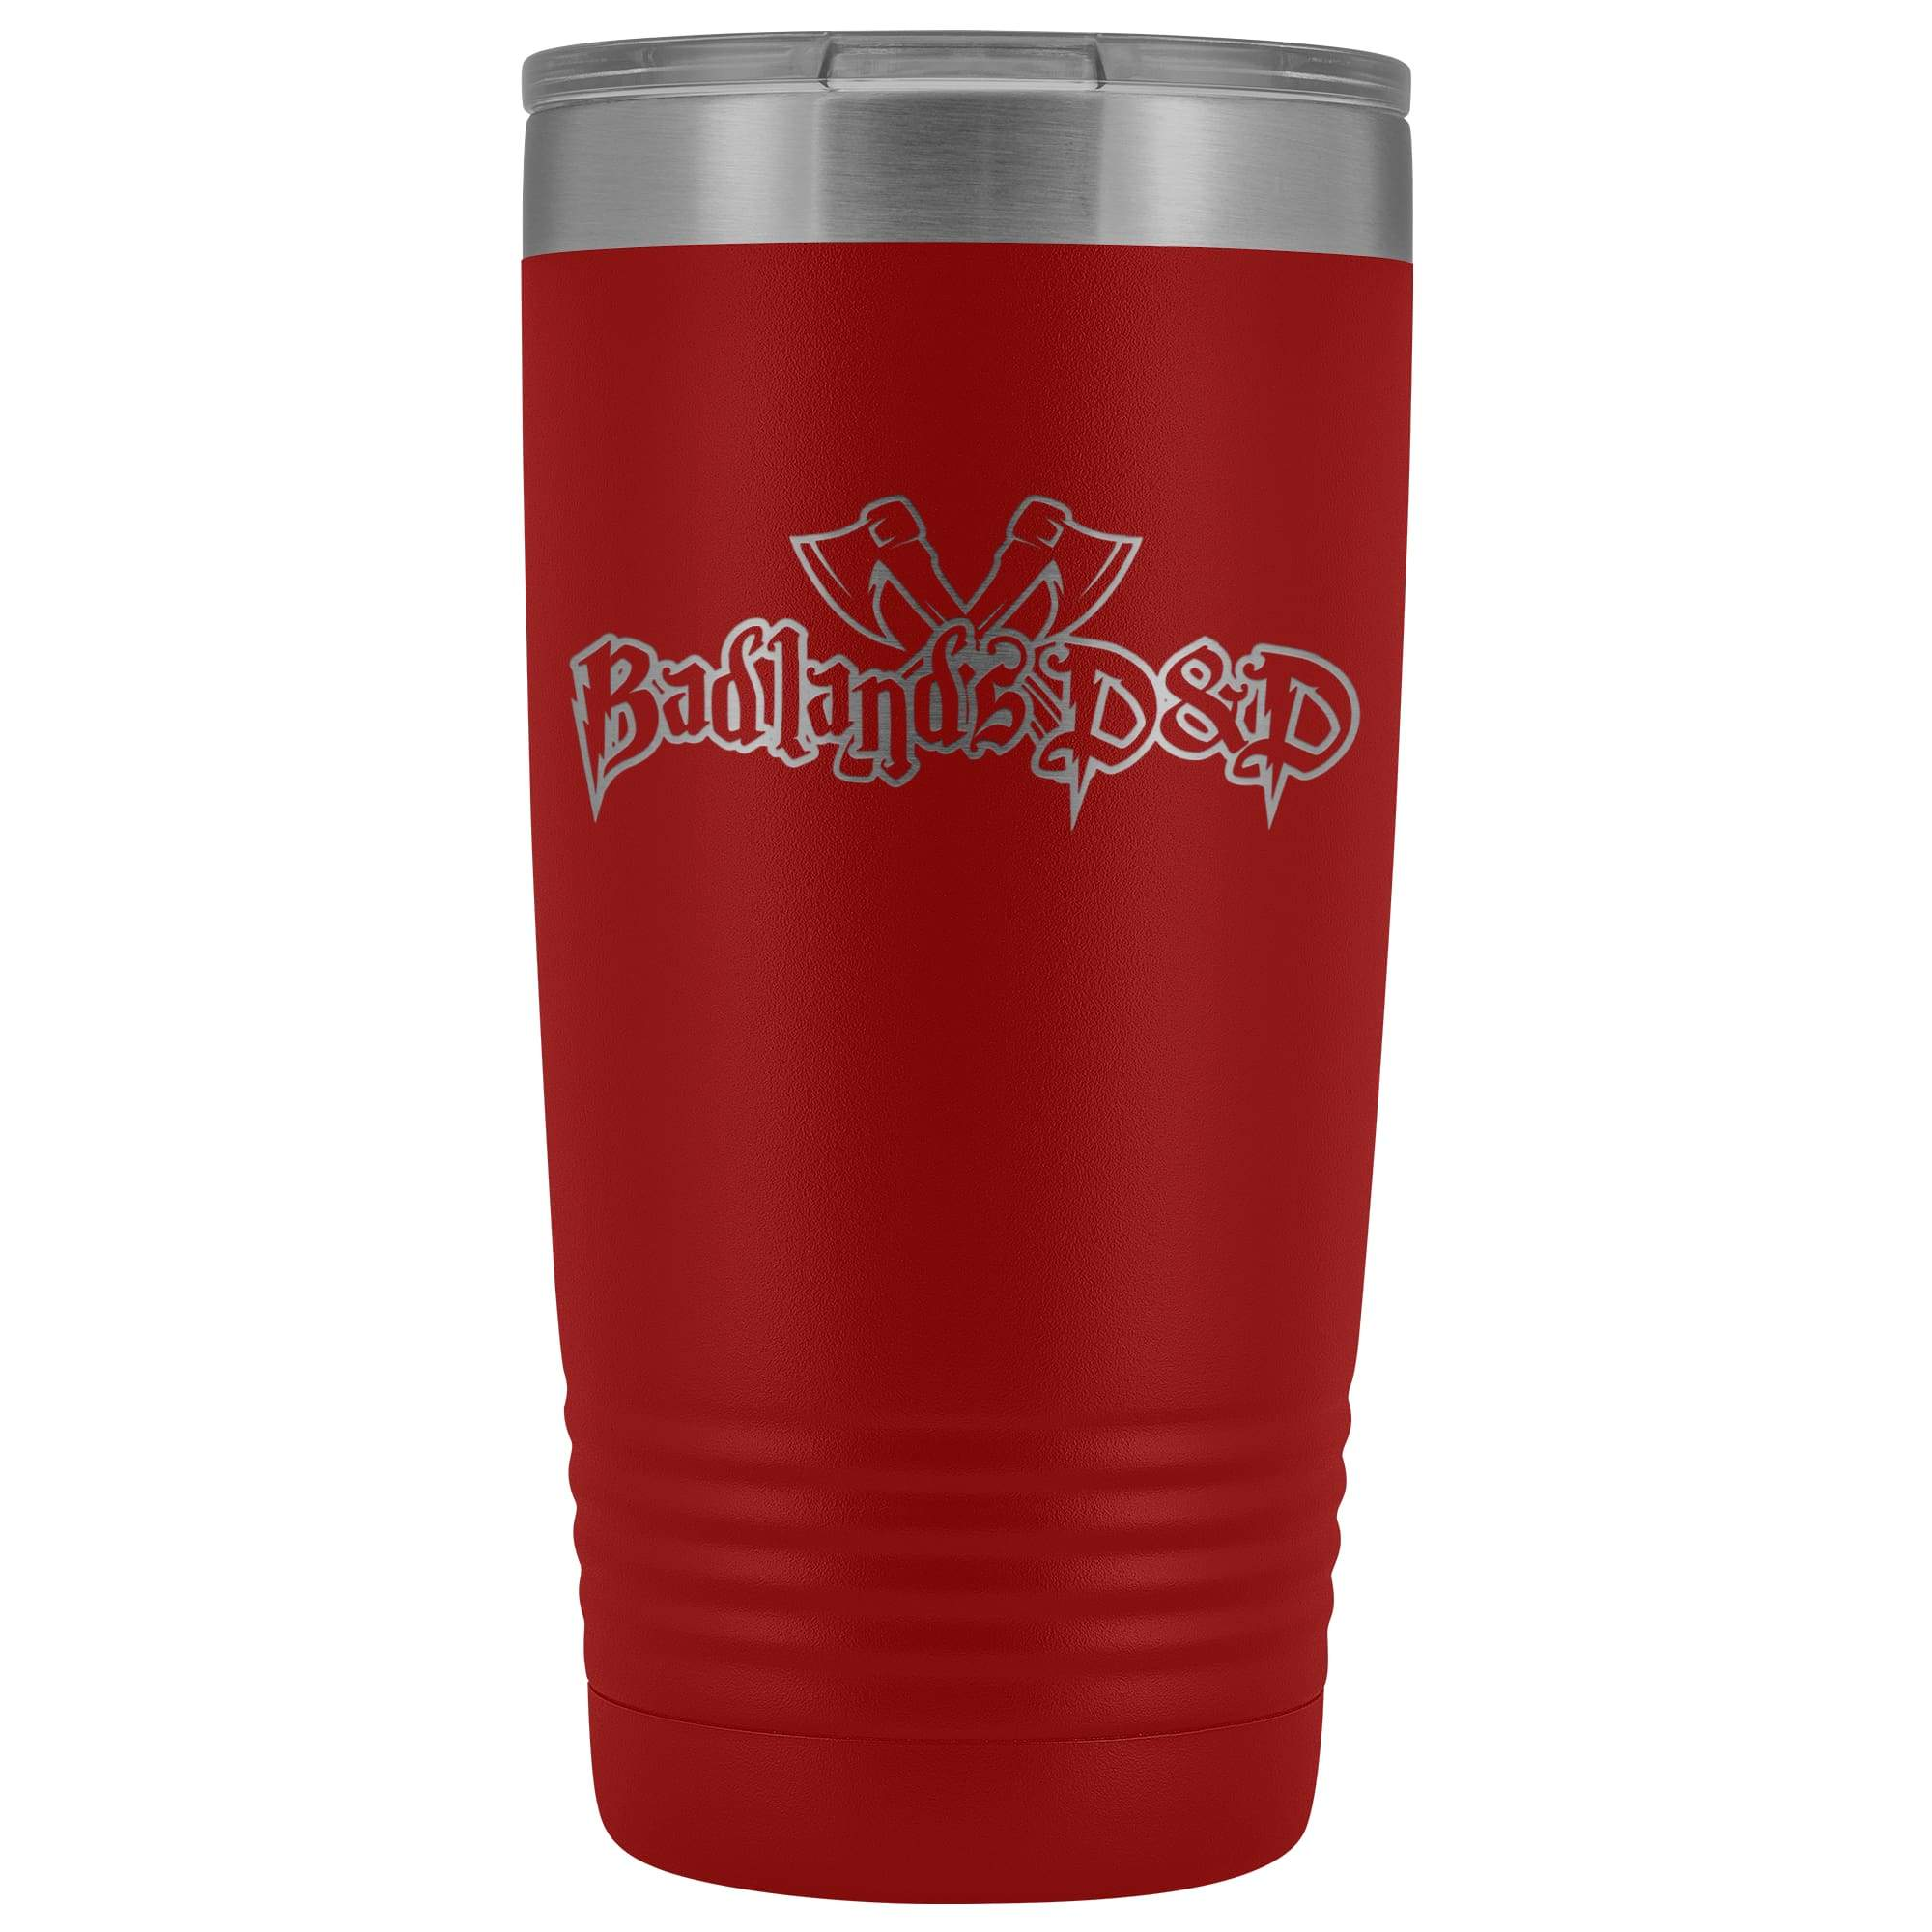 Badlands D&D 20oz Vacuum Tumbler - Red - Tumblers